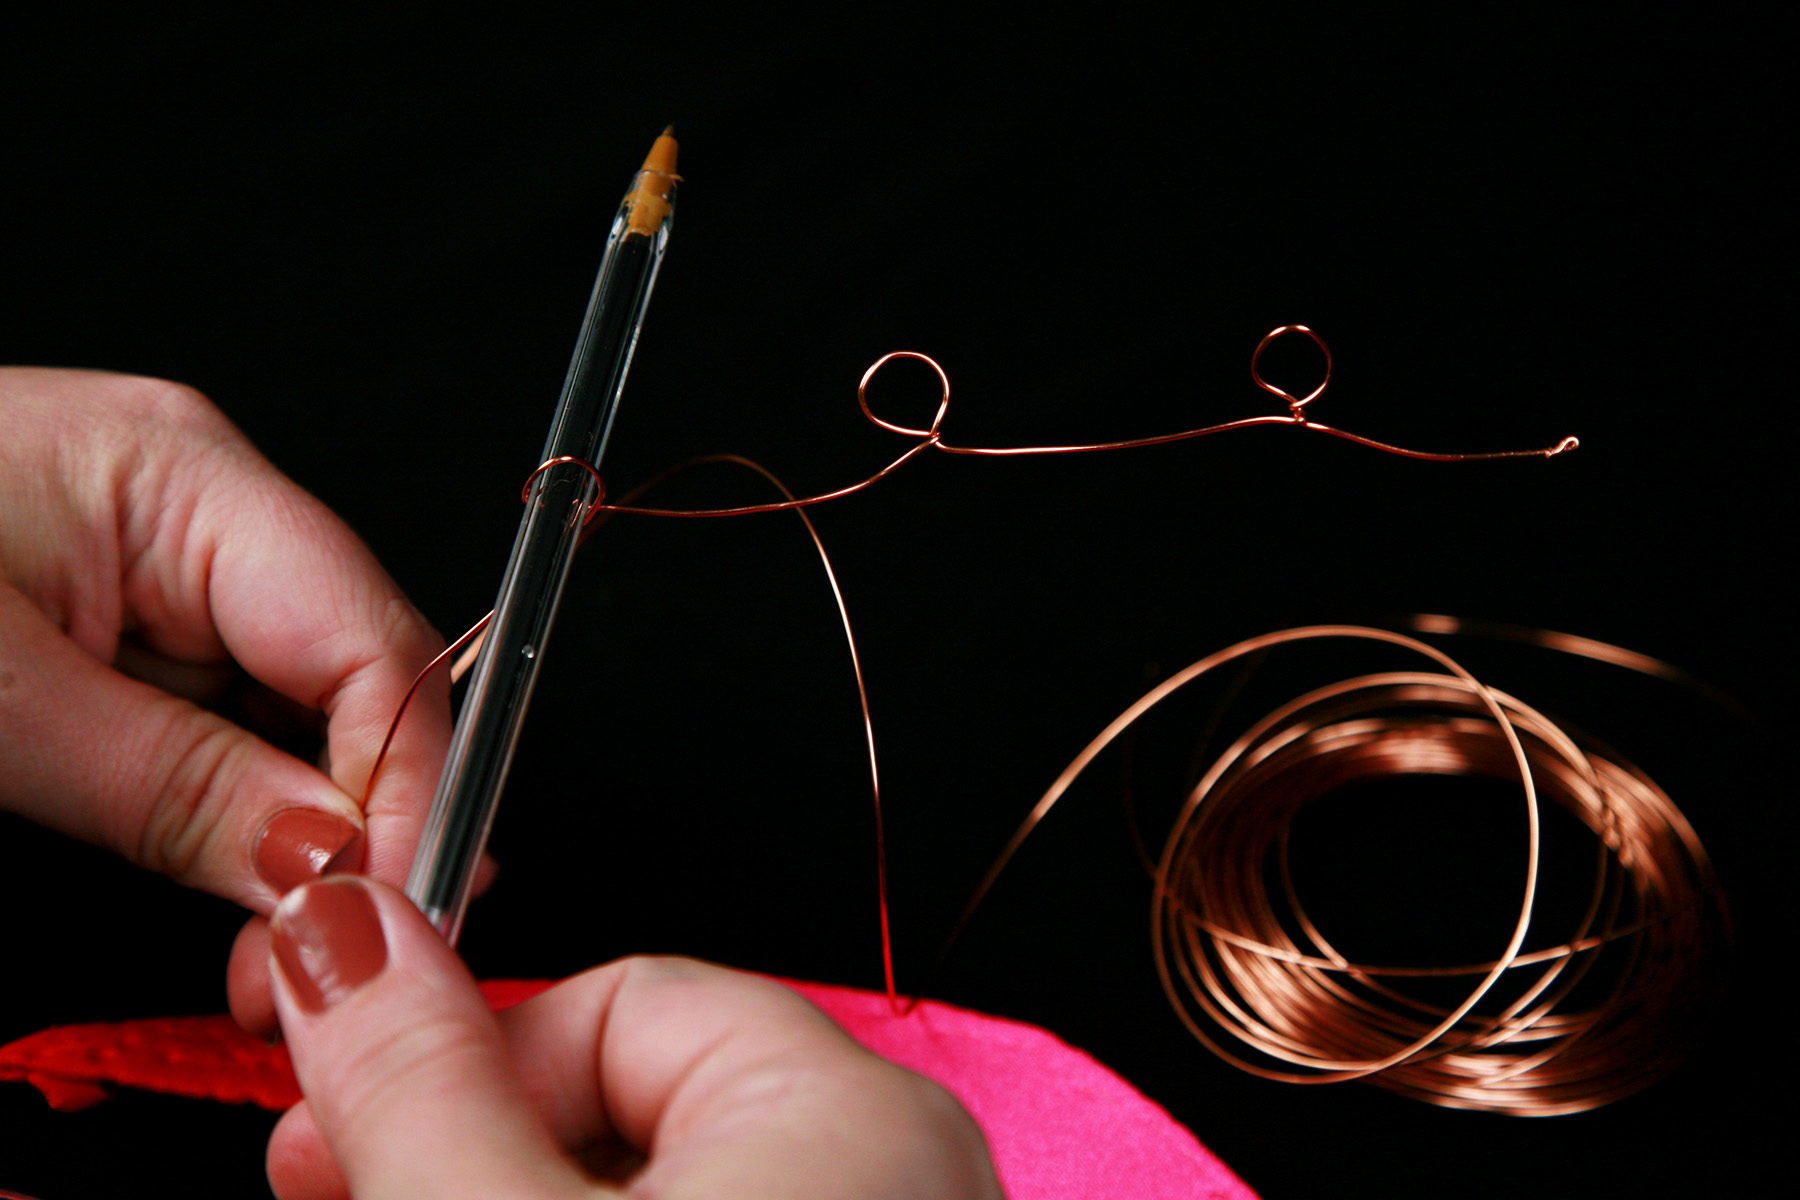 Two hands wrap a length of copper wire around a pen.